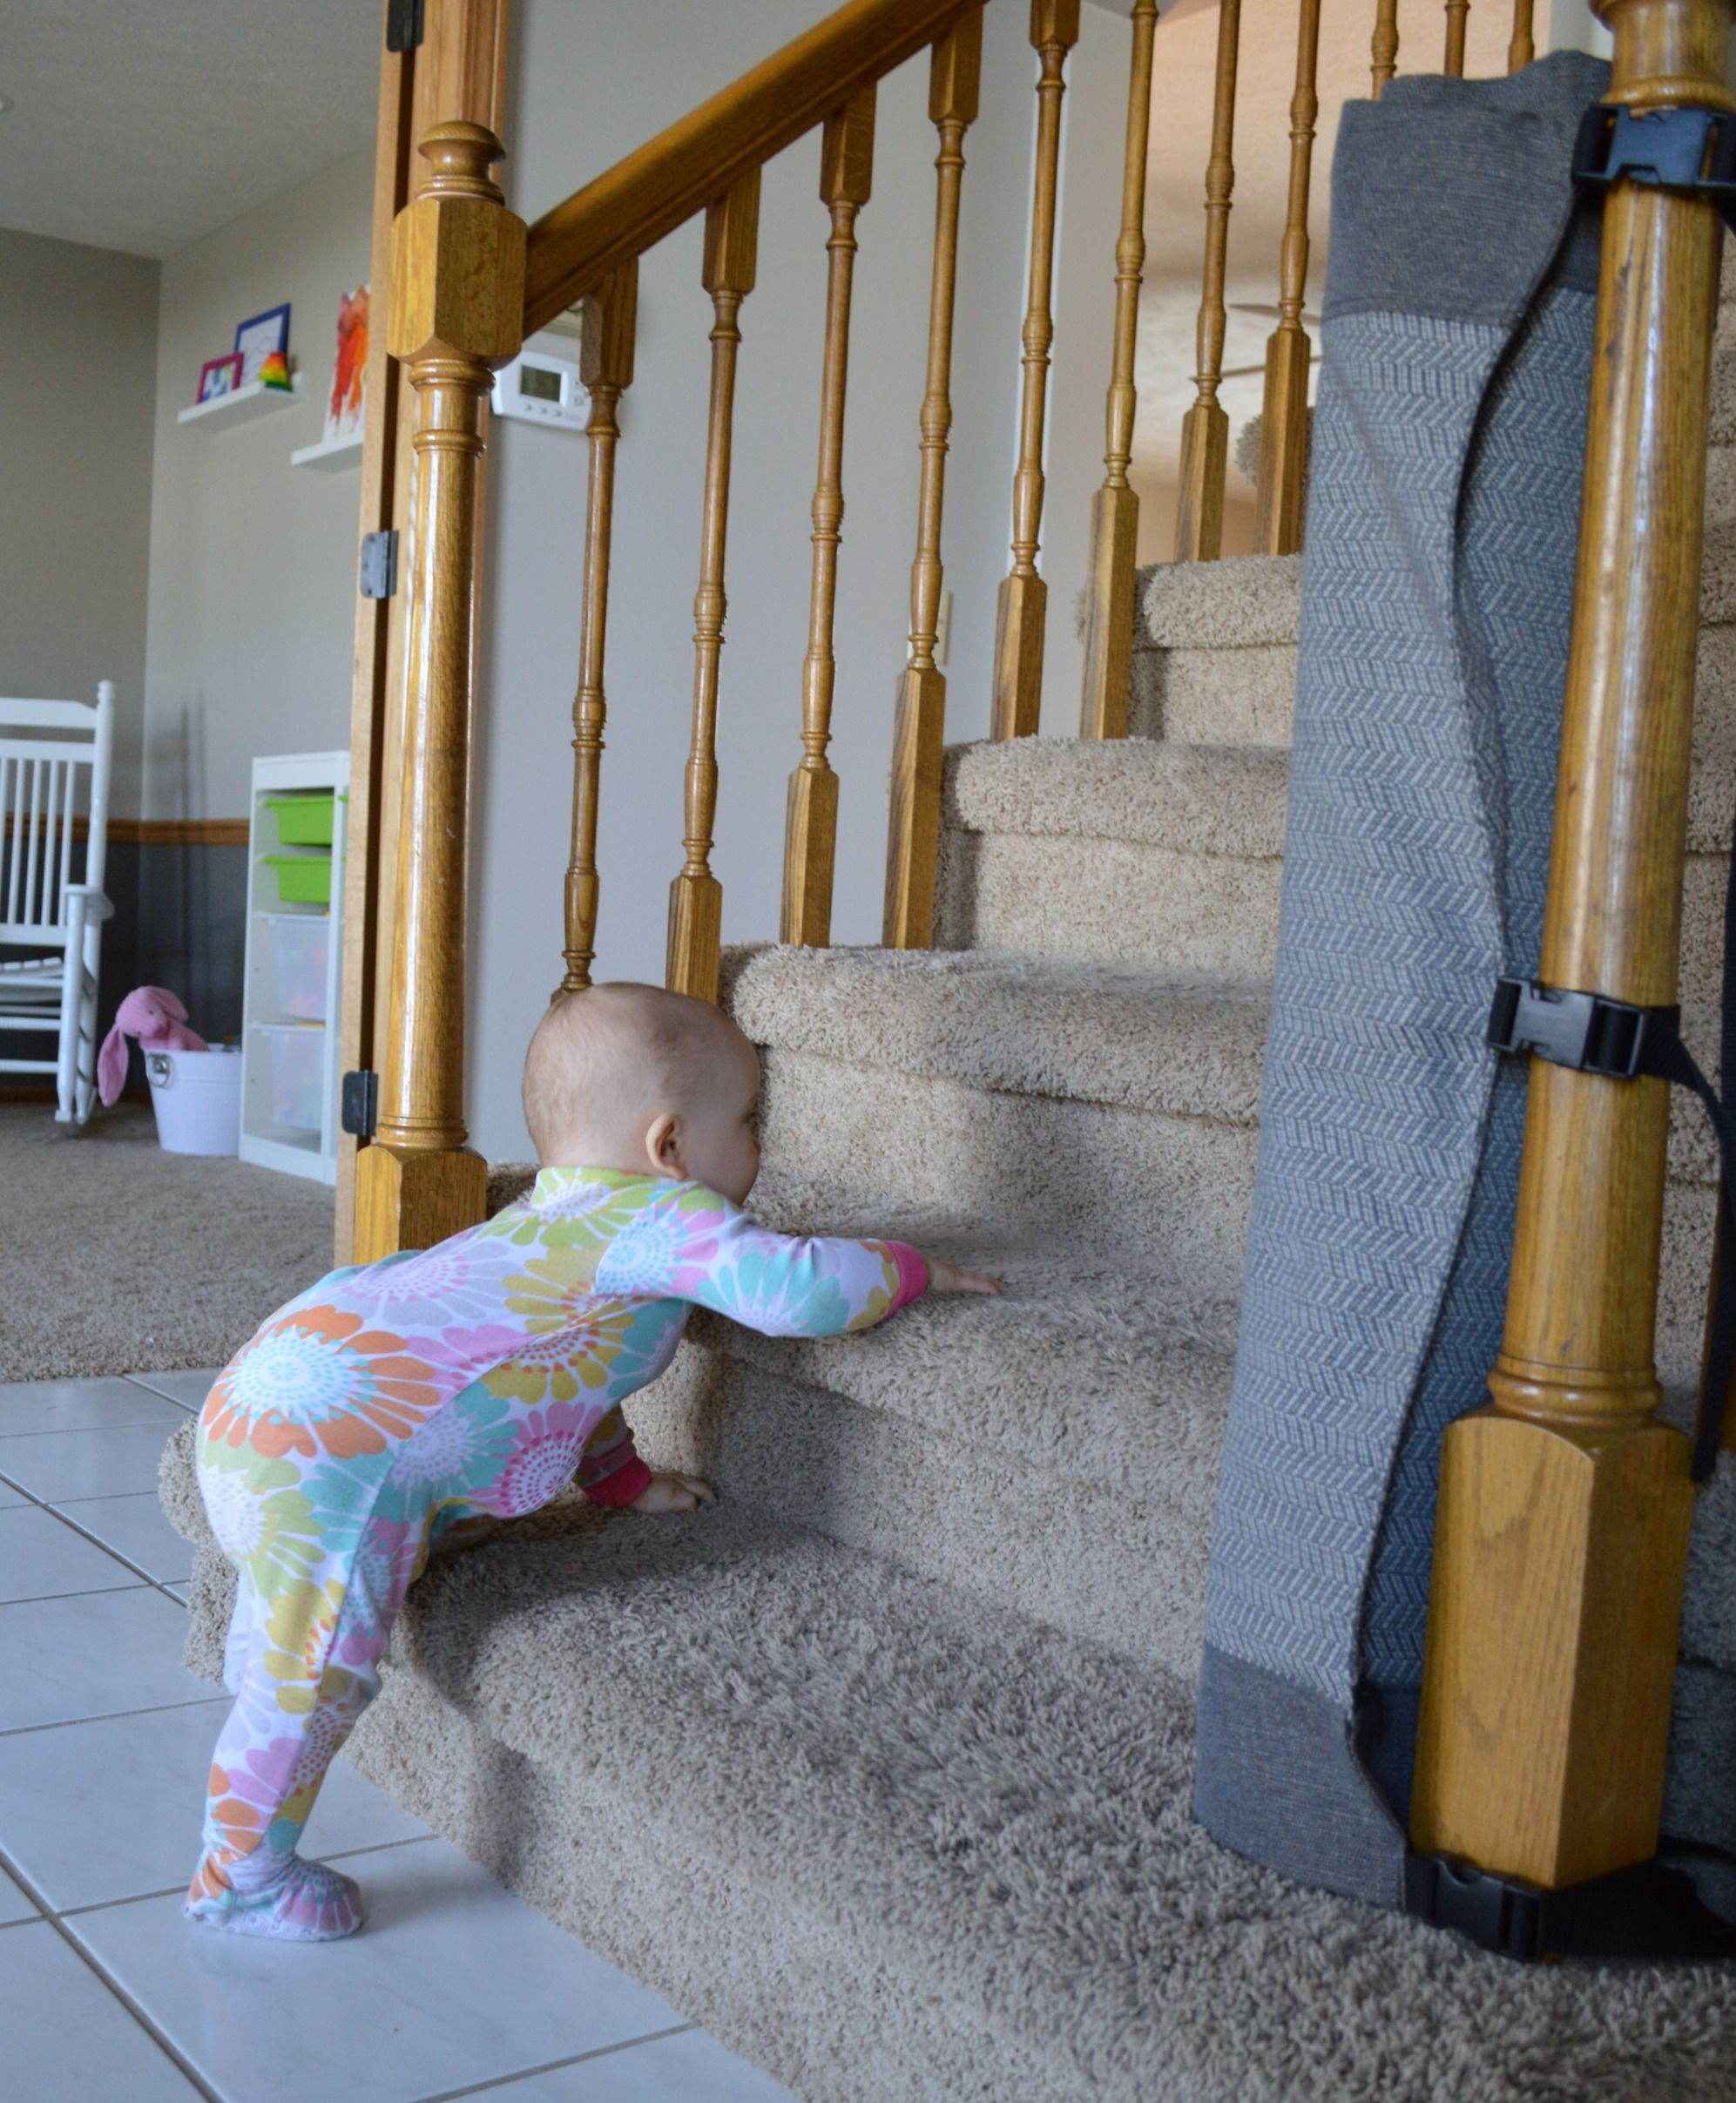 Captivating A Stylish New Way For Baby Proofing Stairs